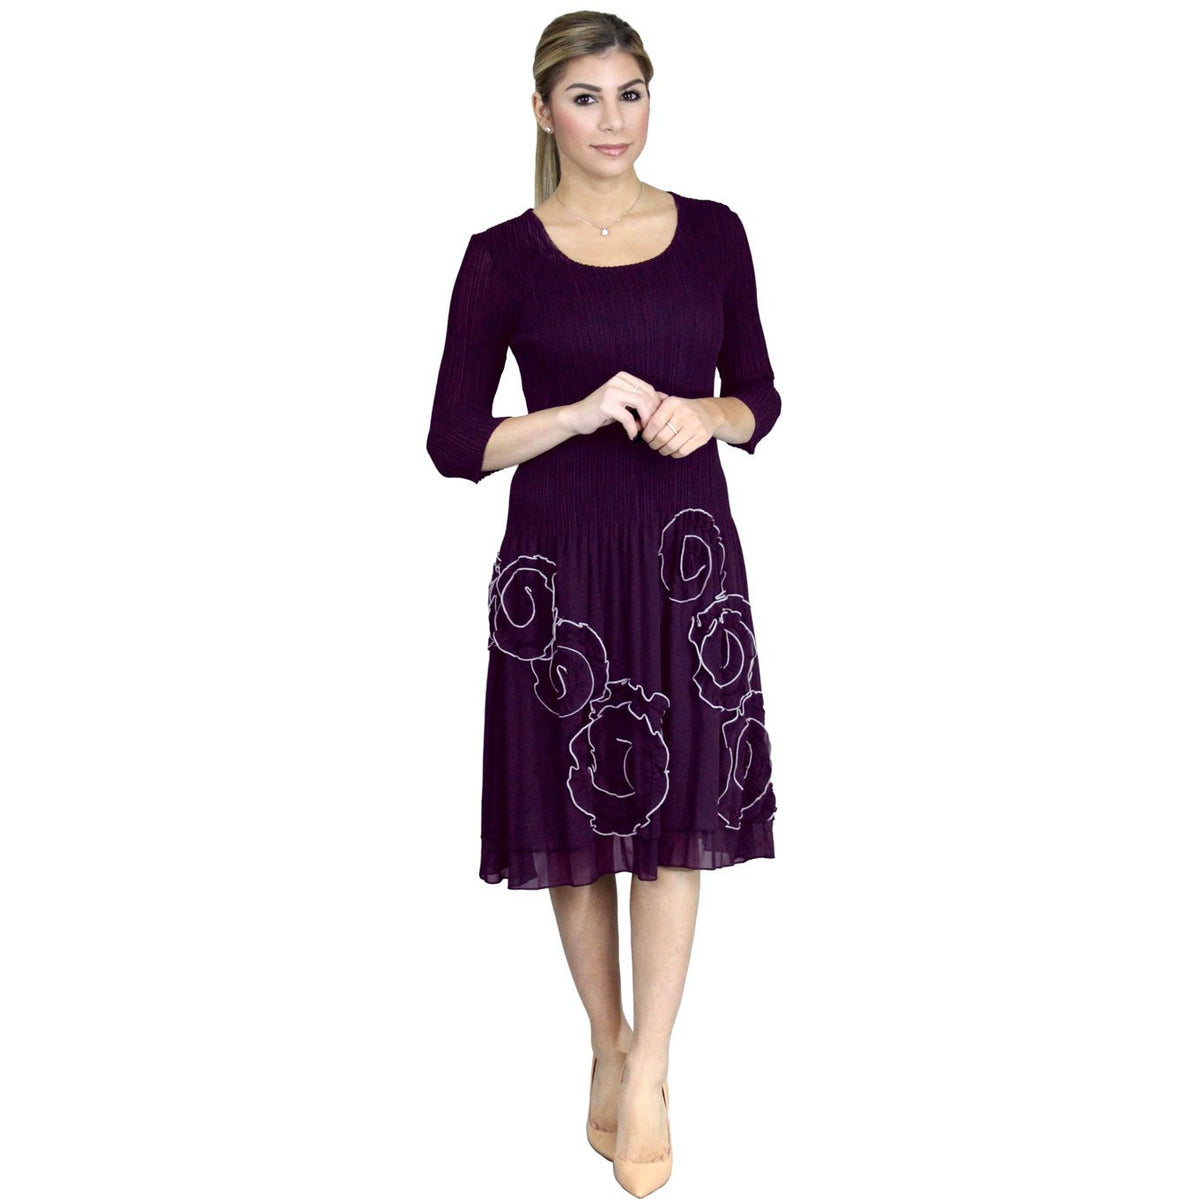 3/4 Sleeve Swirl Stitch Dress - Eggplant